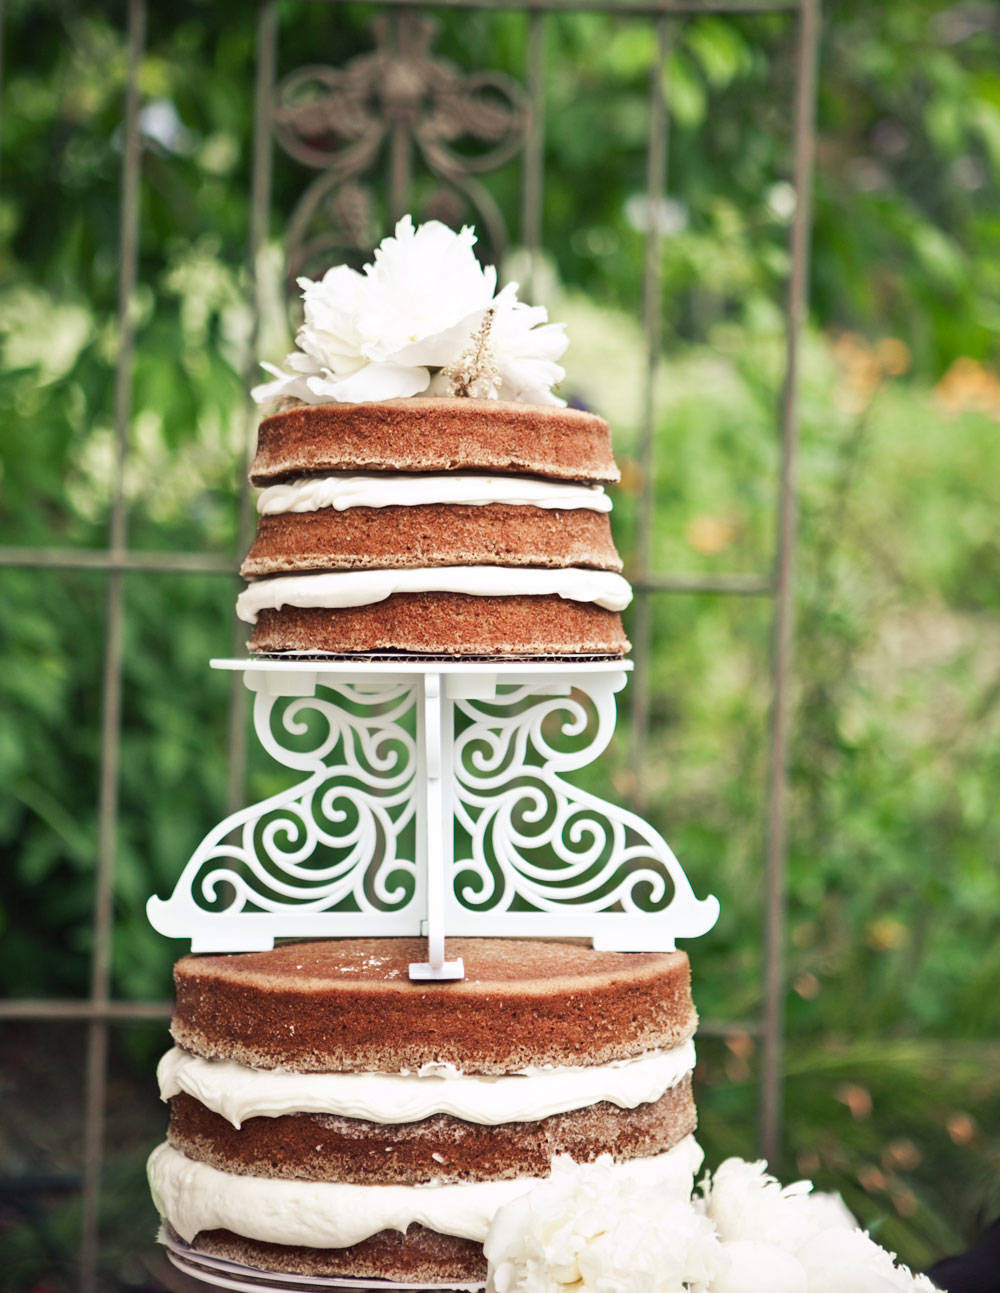 Wedding Cakes Without Frosting  Wedding Cakes Without Fondant Wedding Cakes Without Frosting